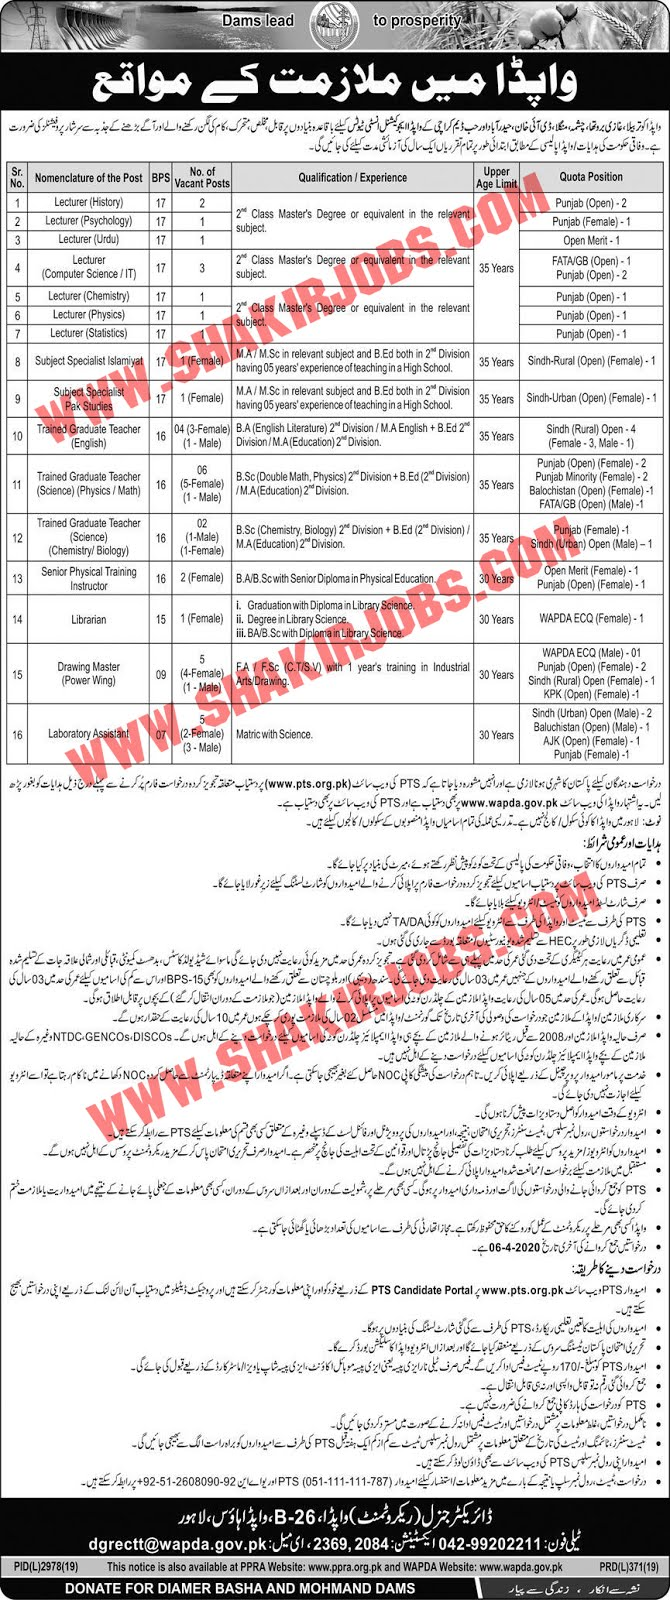 wapda jobs 2020,latest wapda jobs 2020,wapda latest jobs,wapda jobs,new wapda jobs 2020,wapda jobs 2019 punjab,jobs in pakistan 2020,new jobs in wapda 2020,wapda jobs 2019,wapda new jobs 2020,wapda jobs 2020 latest,wapda jobs 2020 last date,wapda upcoming jobs 2020,pakistan wapda jobs 2020,qesco jobs 2020,wapda jobs 2020 advertisement,jobs in wapda 2020,wapda jobs 2020 online apply latest